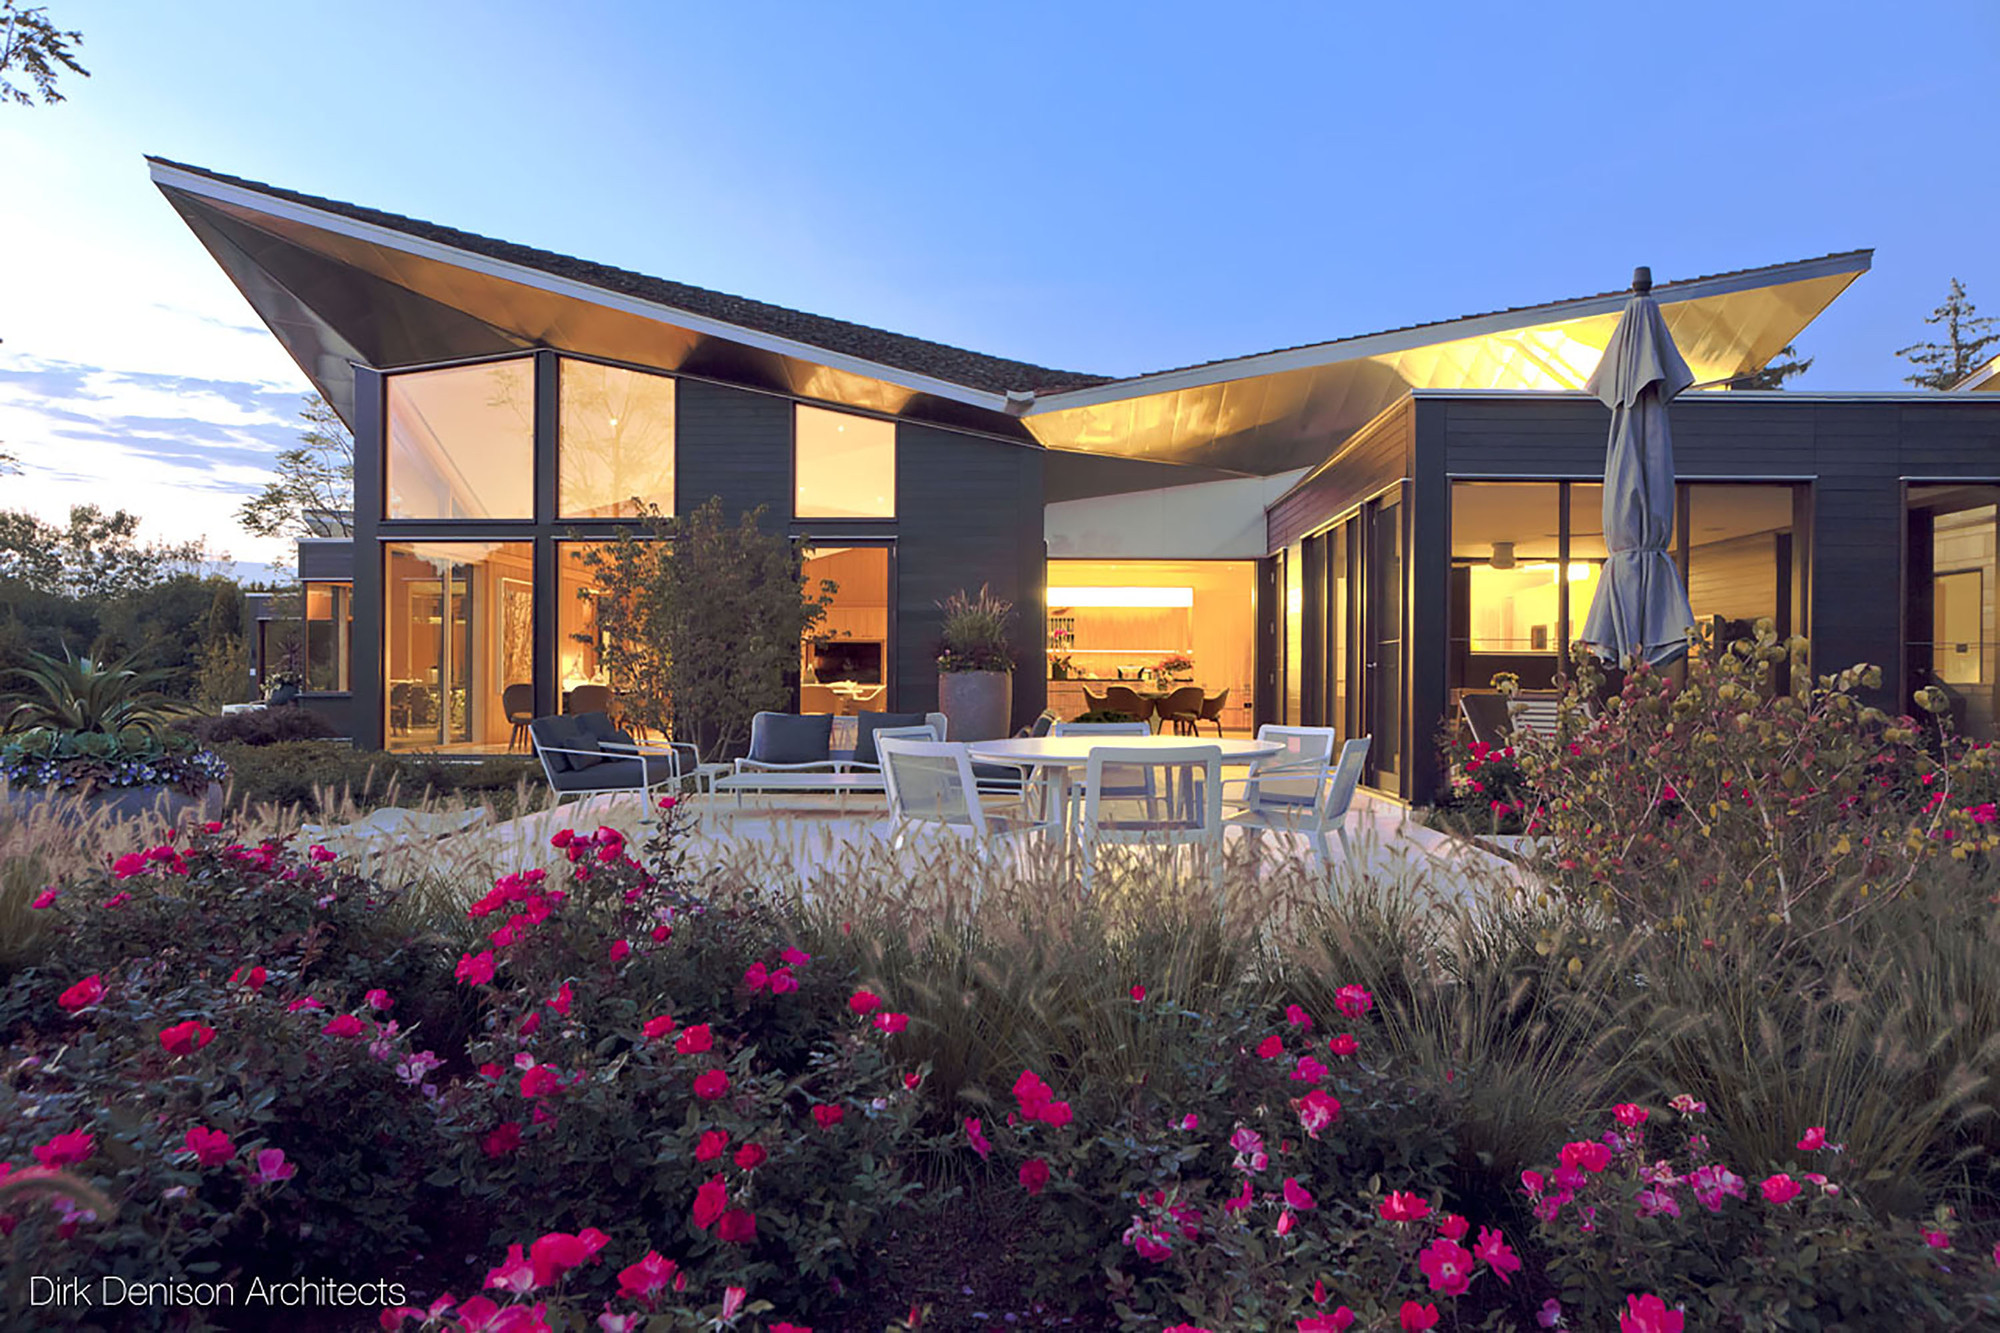 Residencia illinois dirk denison architects plataforma - Residence carmel par dirk denison architects ...